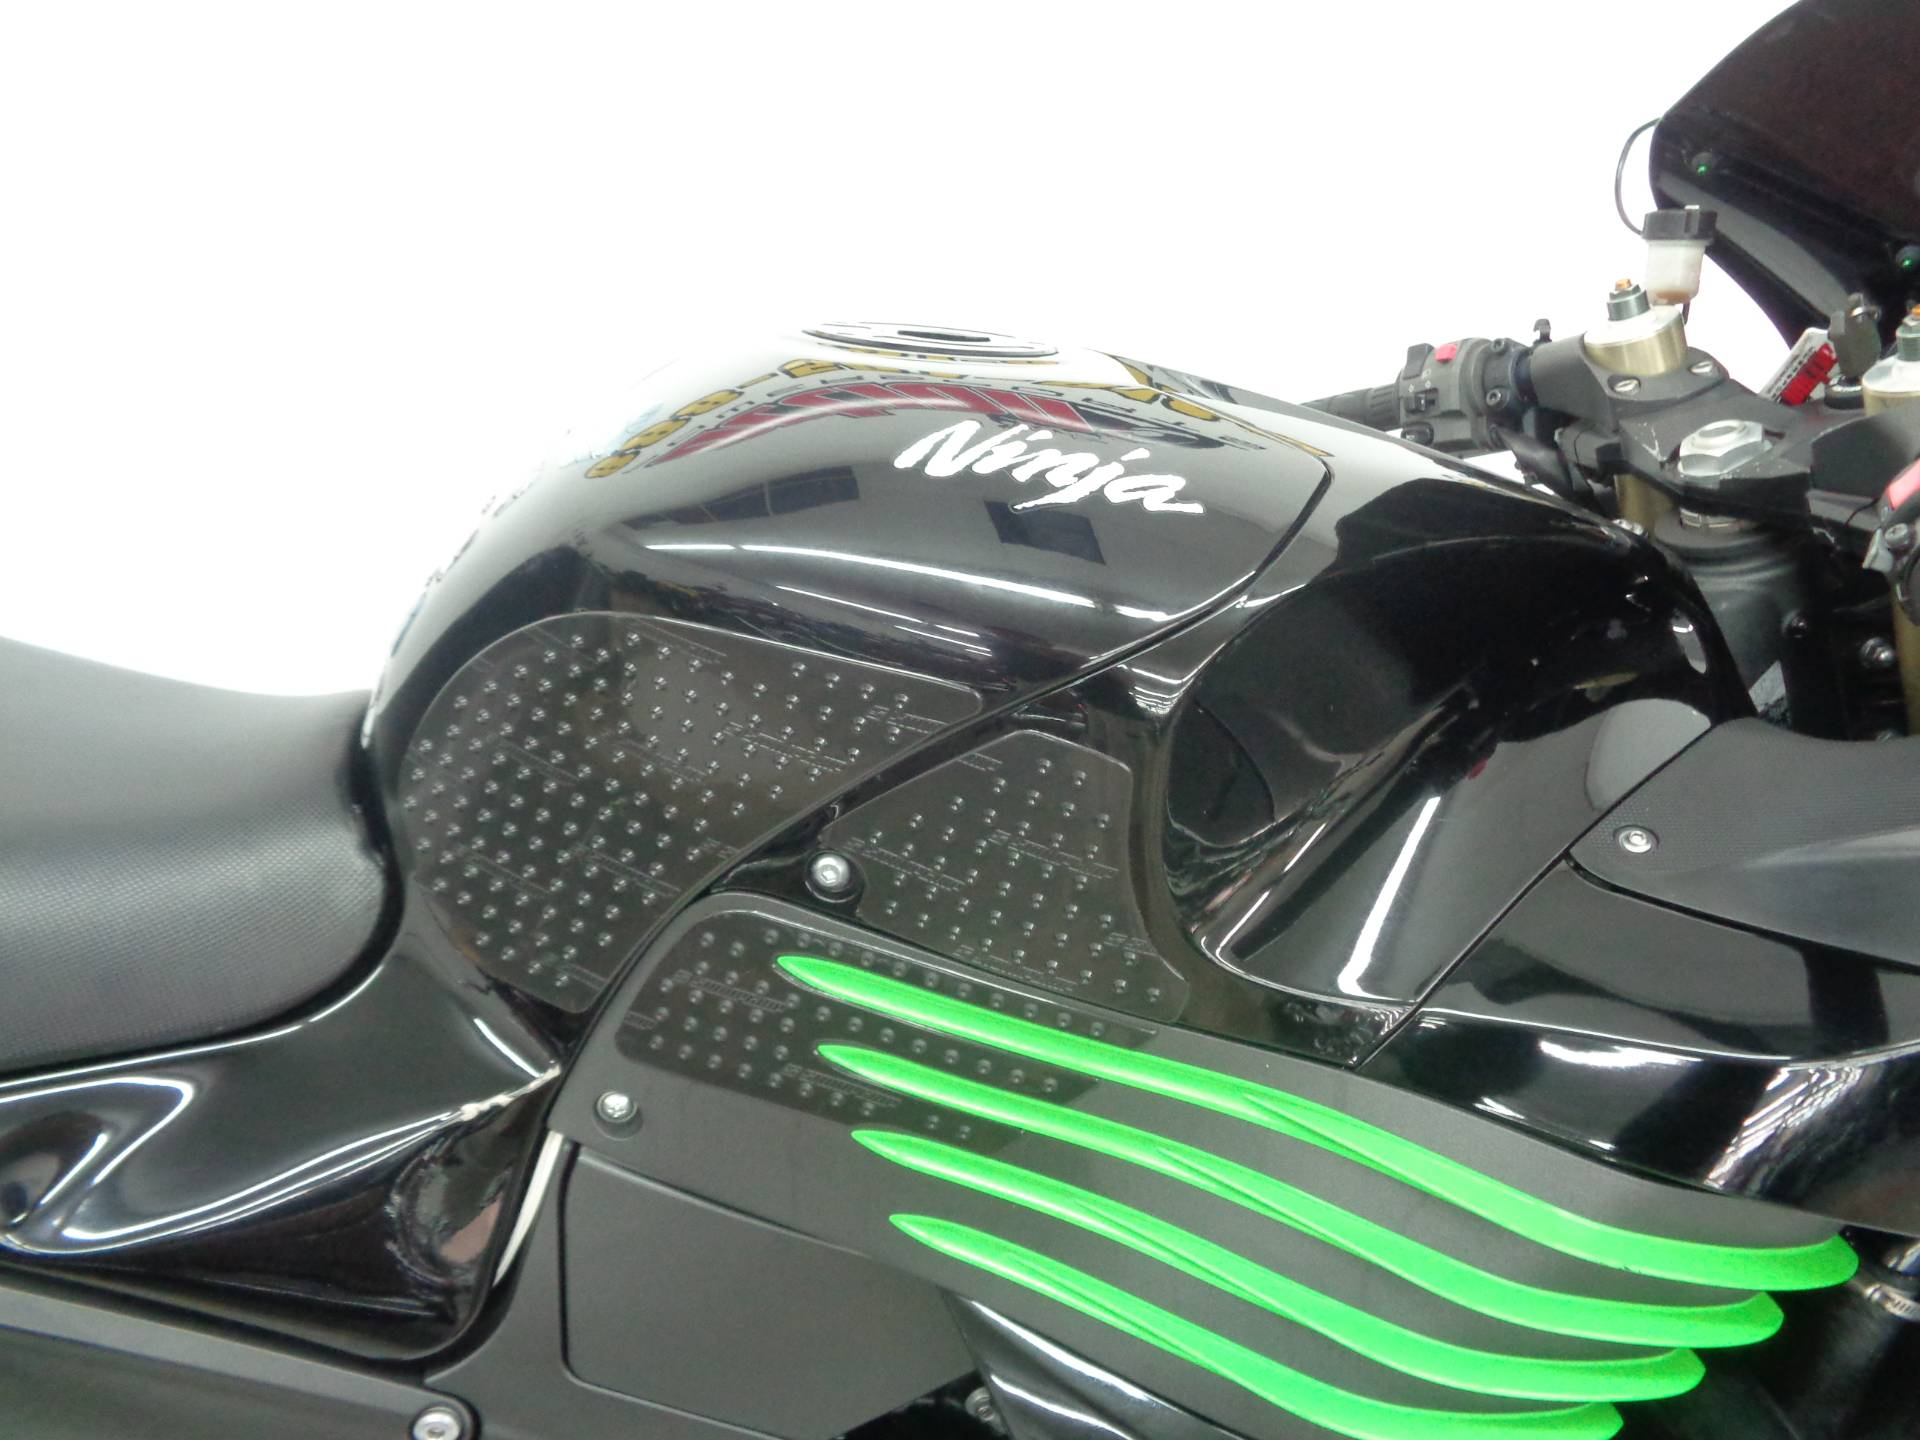 2009 Kawasaki Ninja ZX-14R Monster Energy in Tulsa, Oklahoma - Photo 8